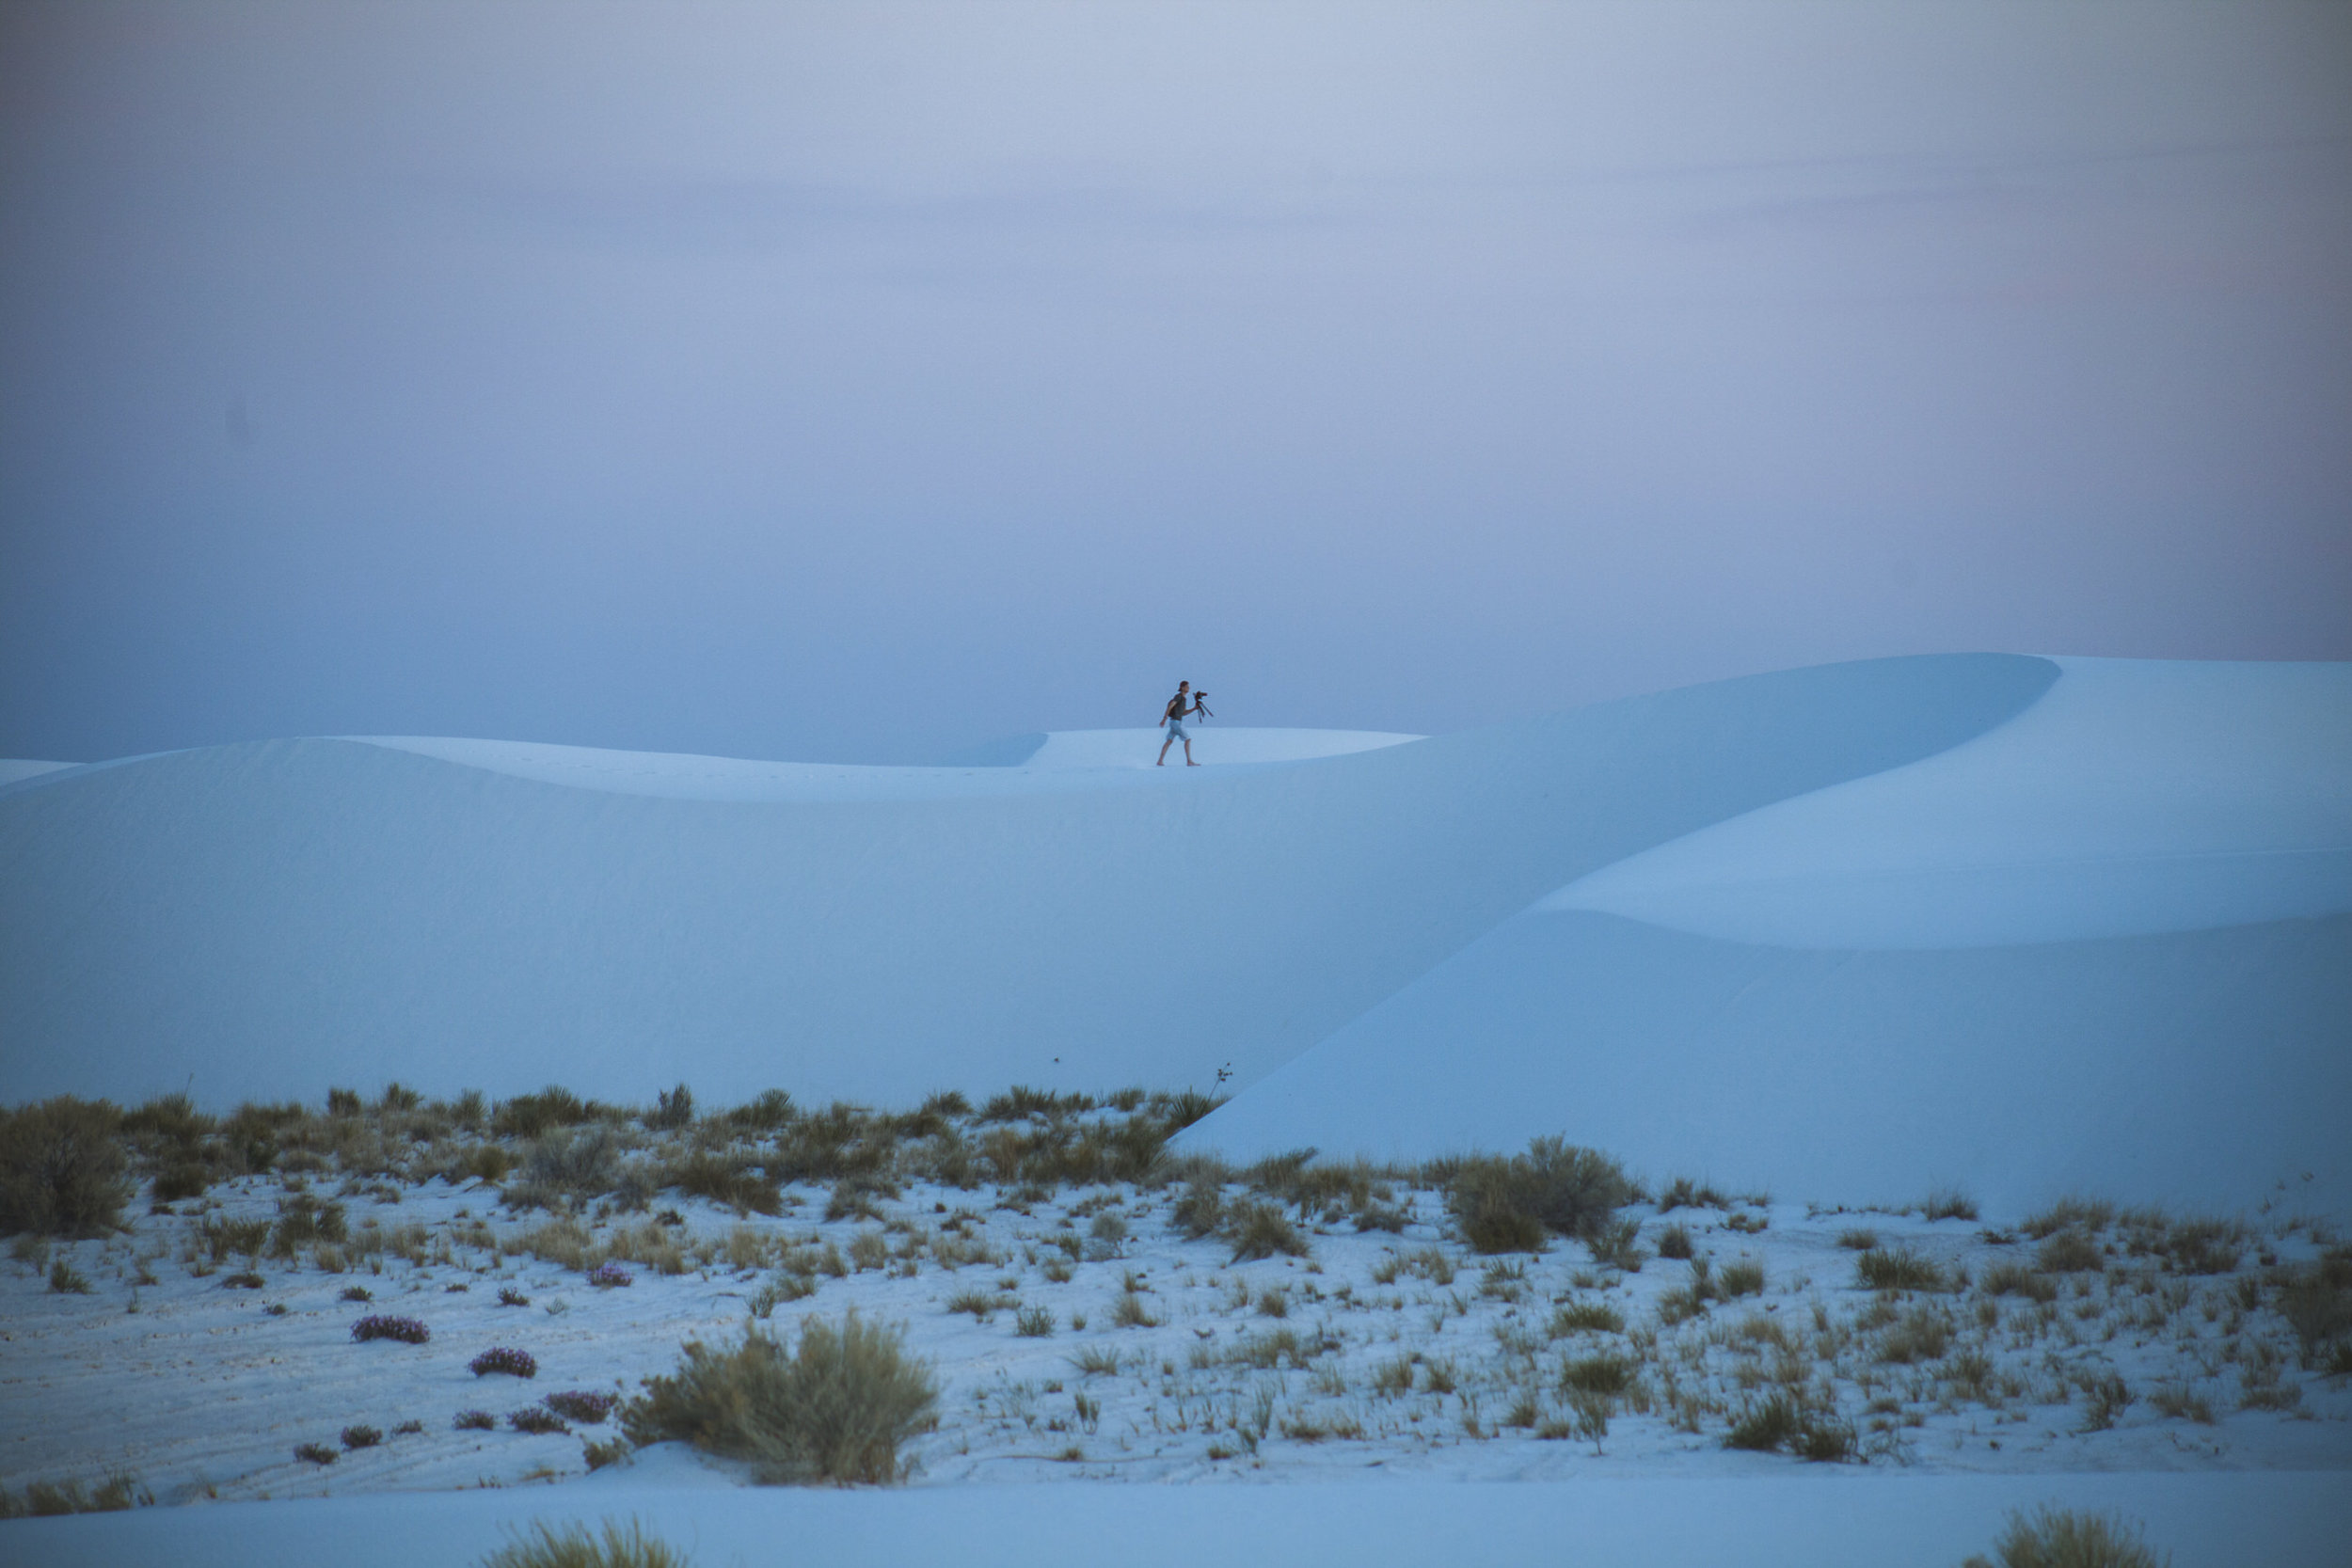 Strolling through White Sands for the first time,  Ryan  was another talented photographer & friend of Kenny's who allowed us to use their site.